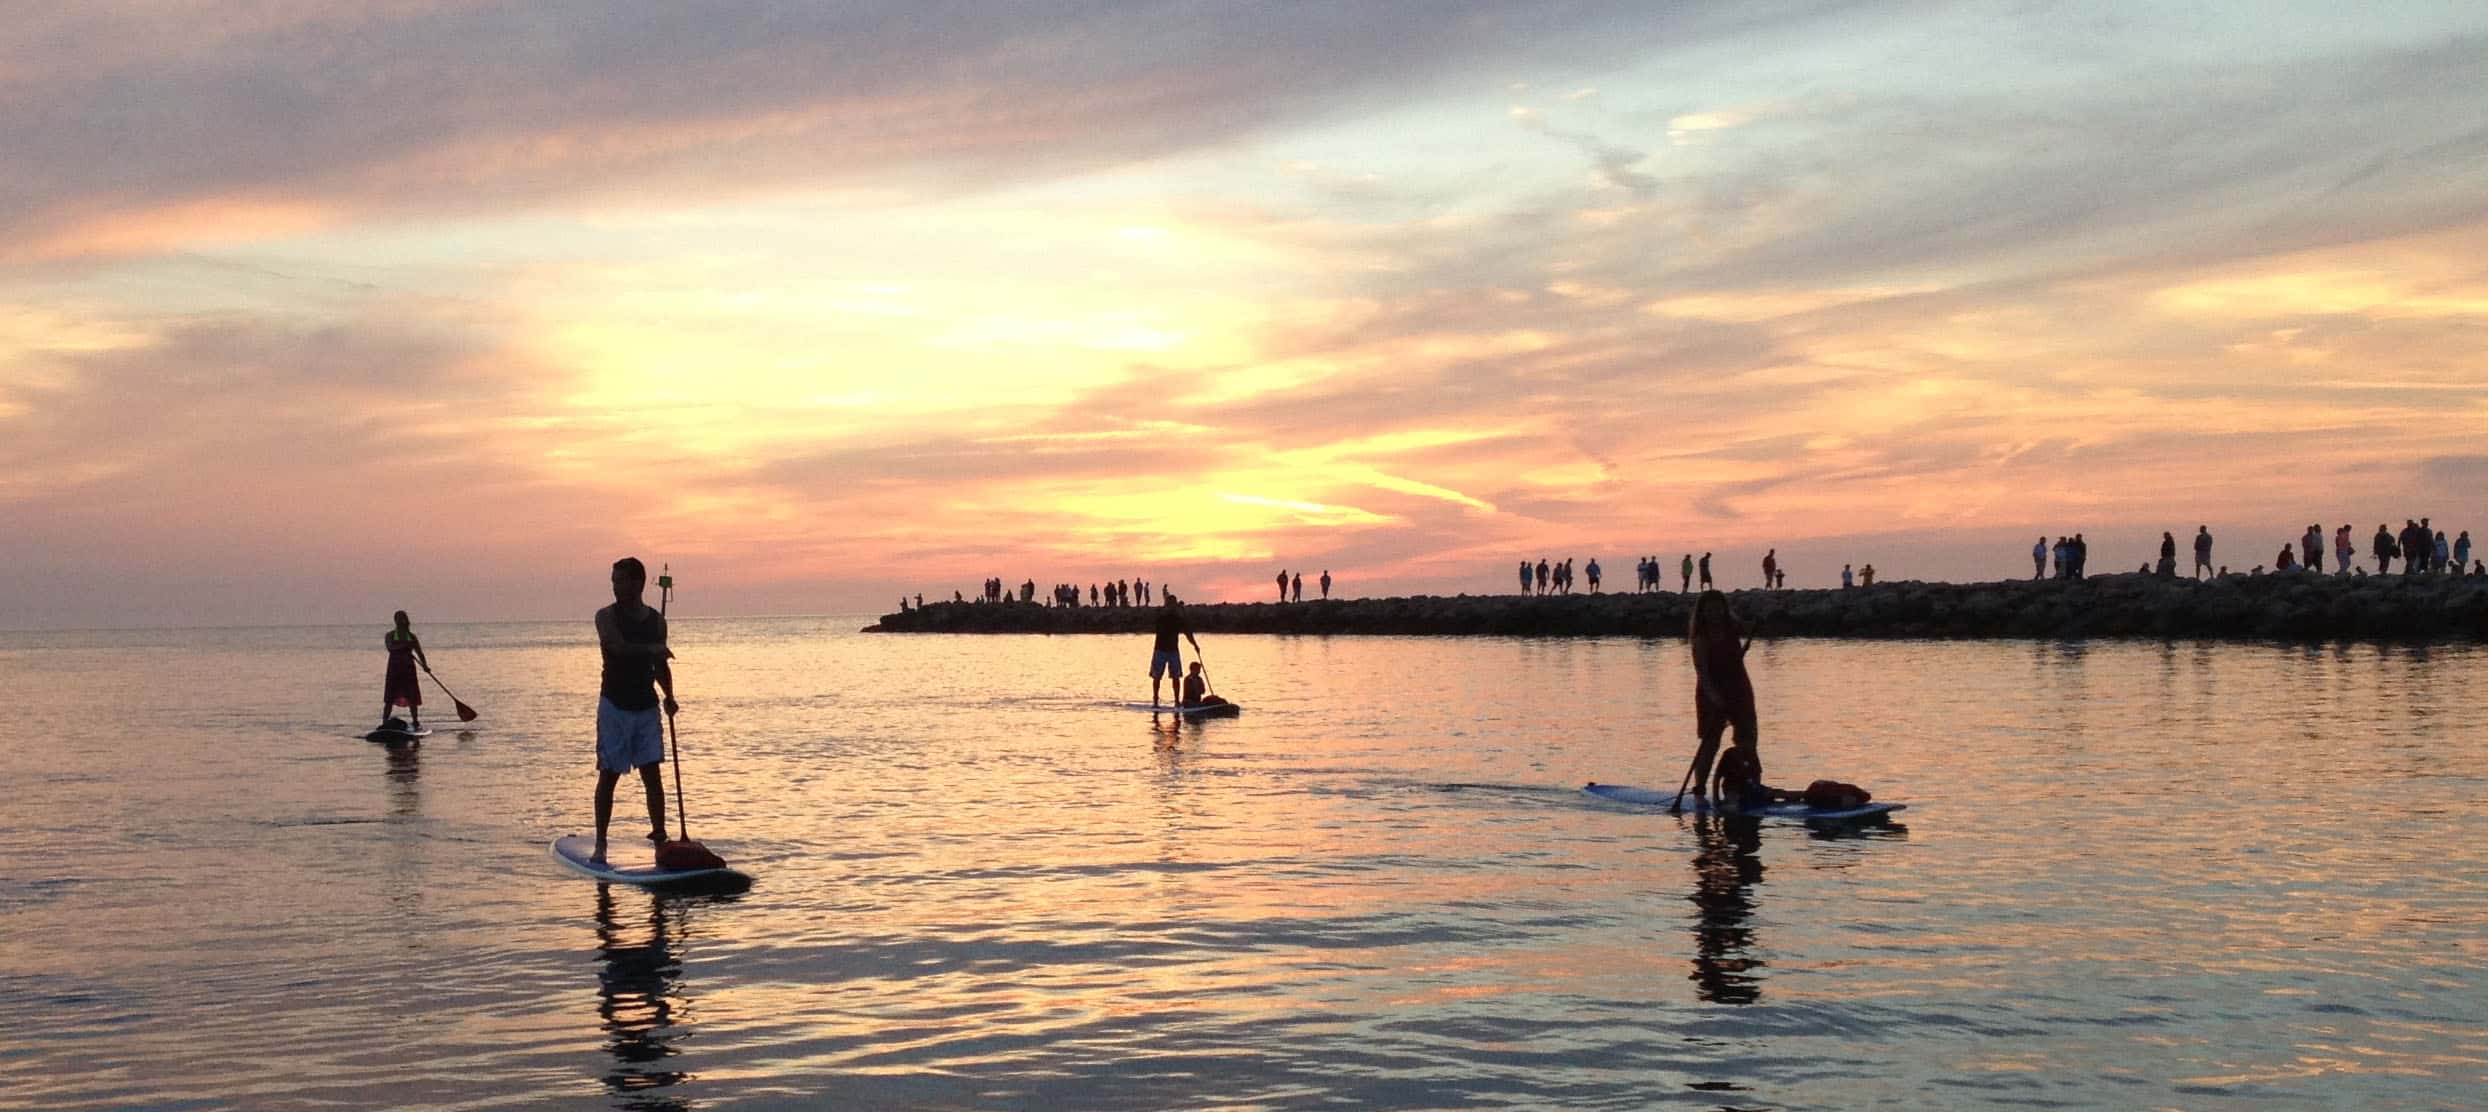 Amazing Places to SUP in Venice, Florida - SUP Englewood